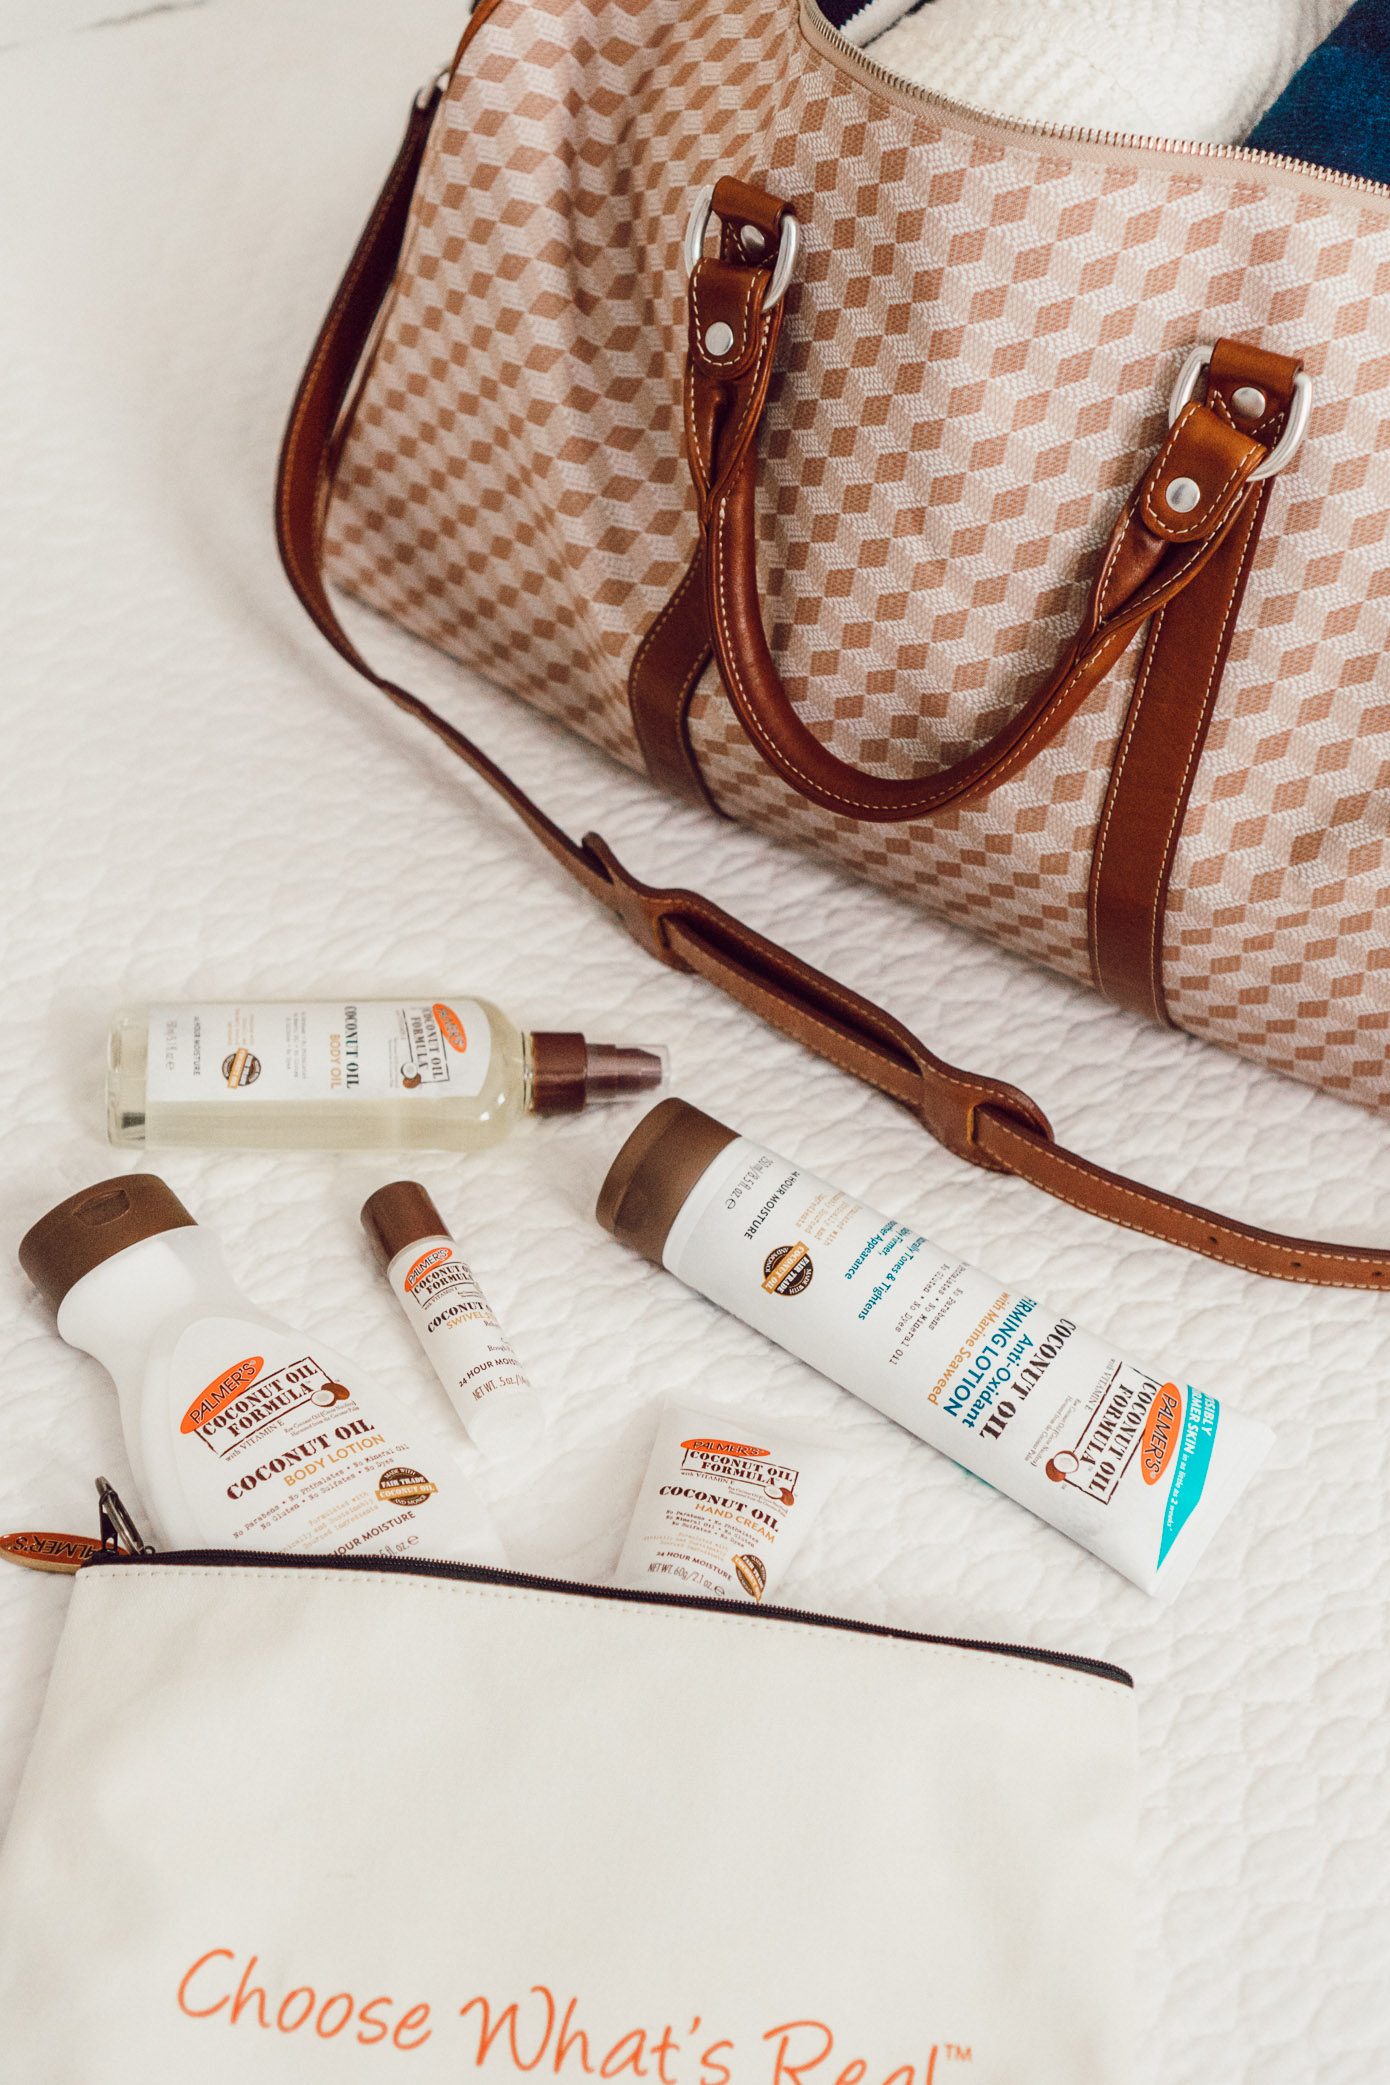 Palmer's Coconut Oil Skincare | Five Ways to Hydrate Your Skin While Traveling featured on Louella Reese